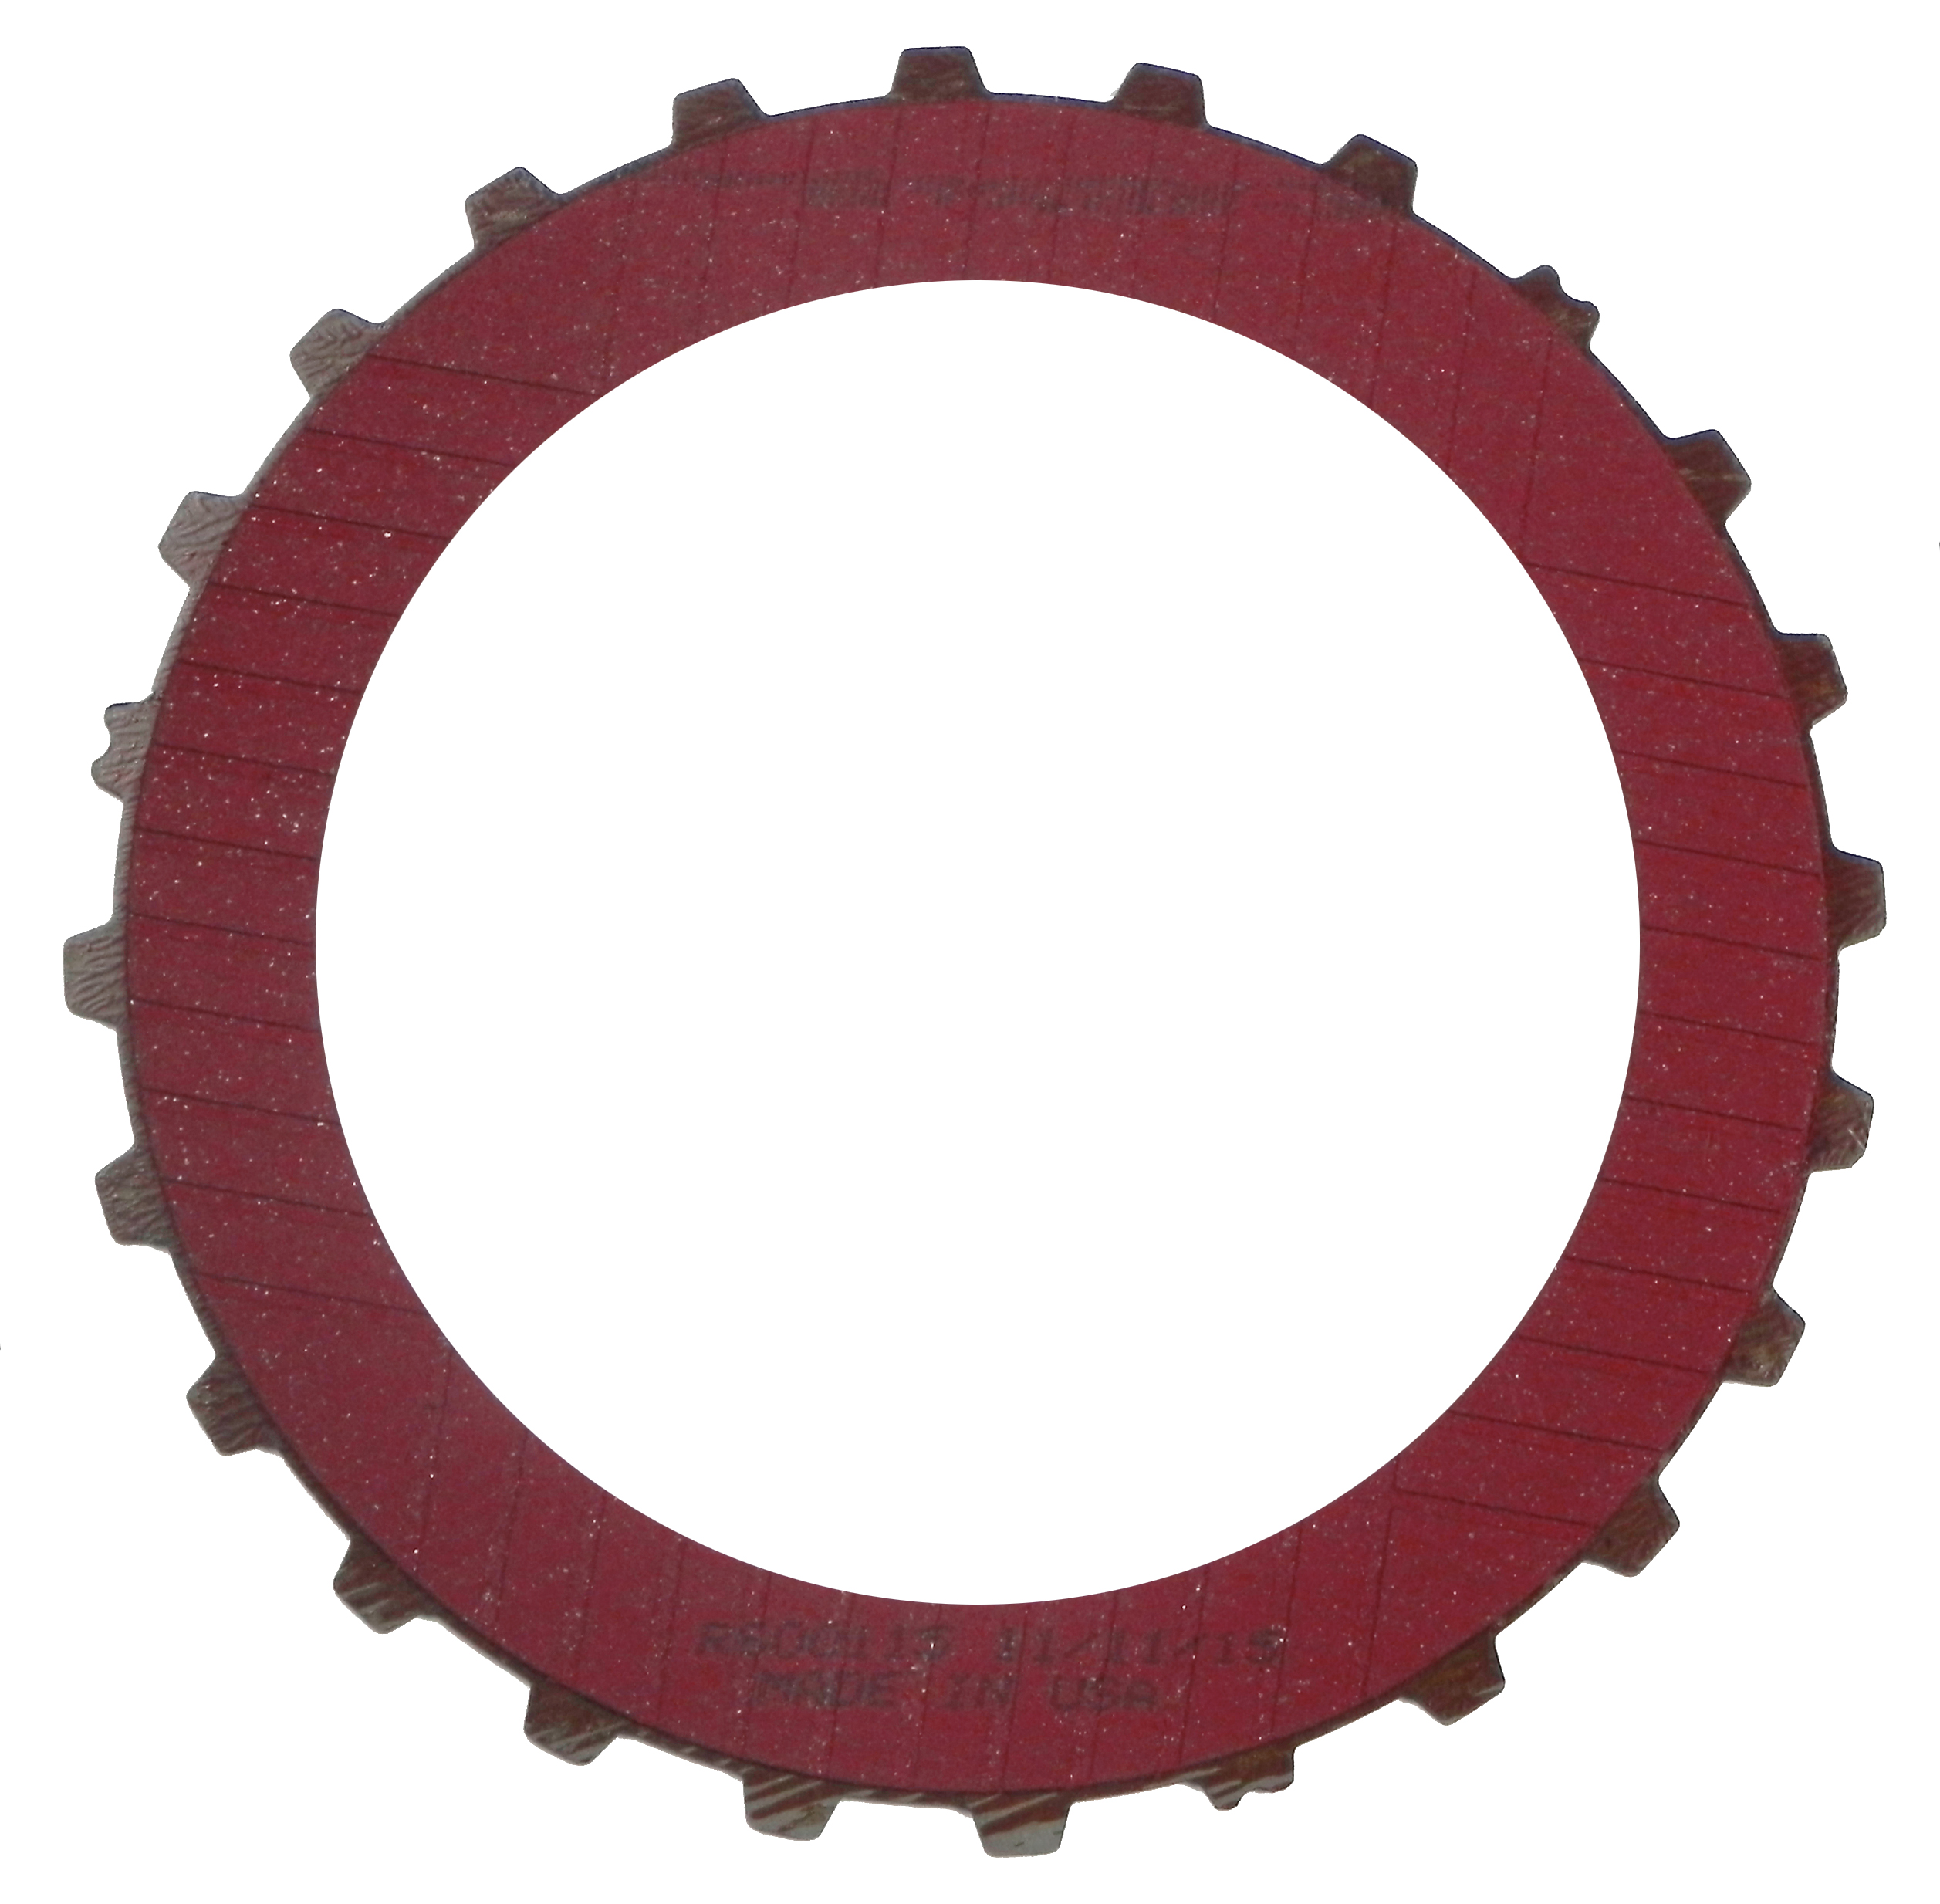 722.6 (96-ON), NAG1 (W5A380) (04-ON) Stage-1™ Friction Clutch Plate